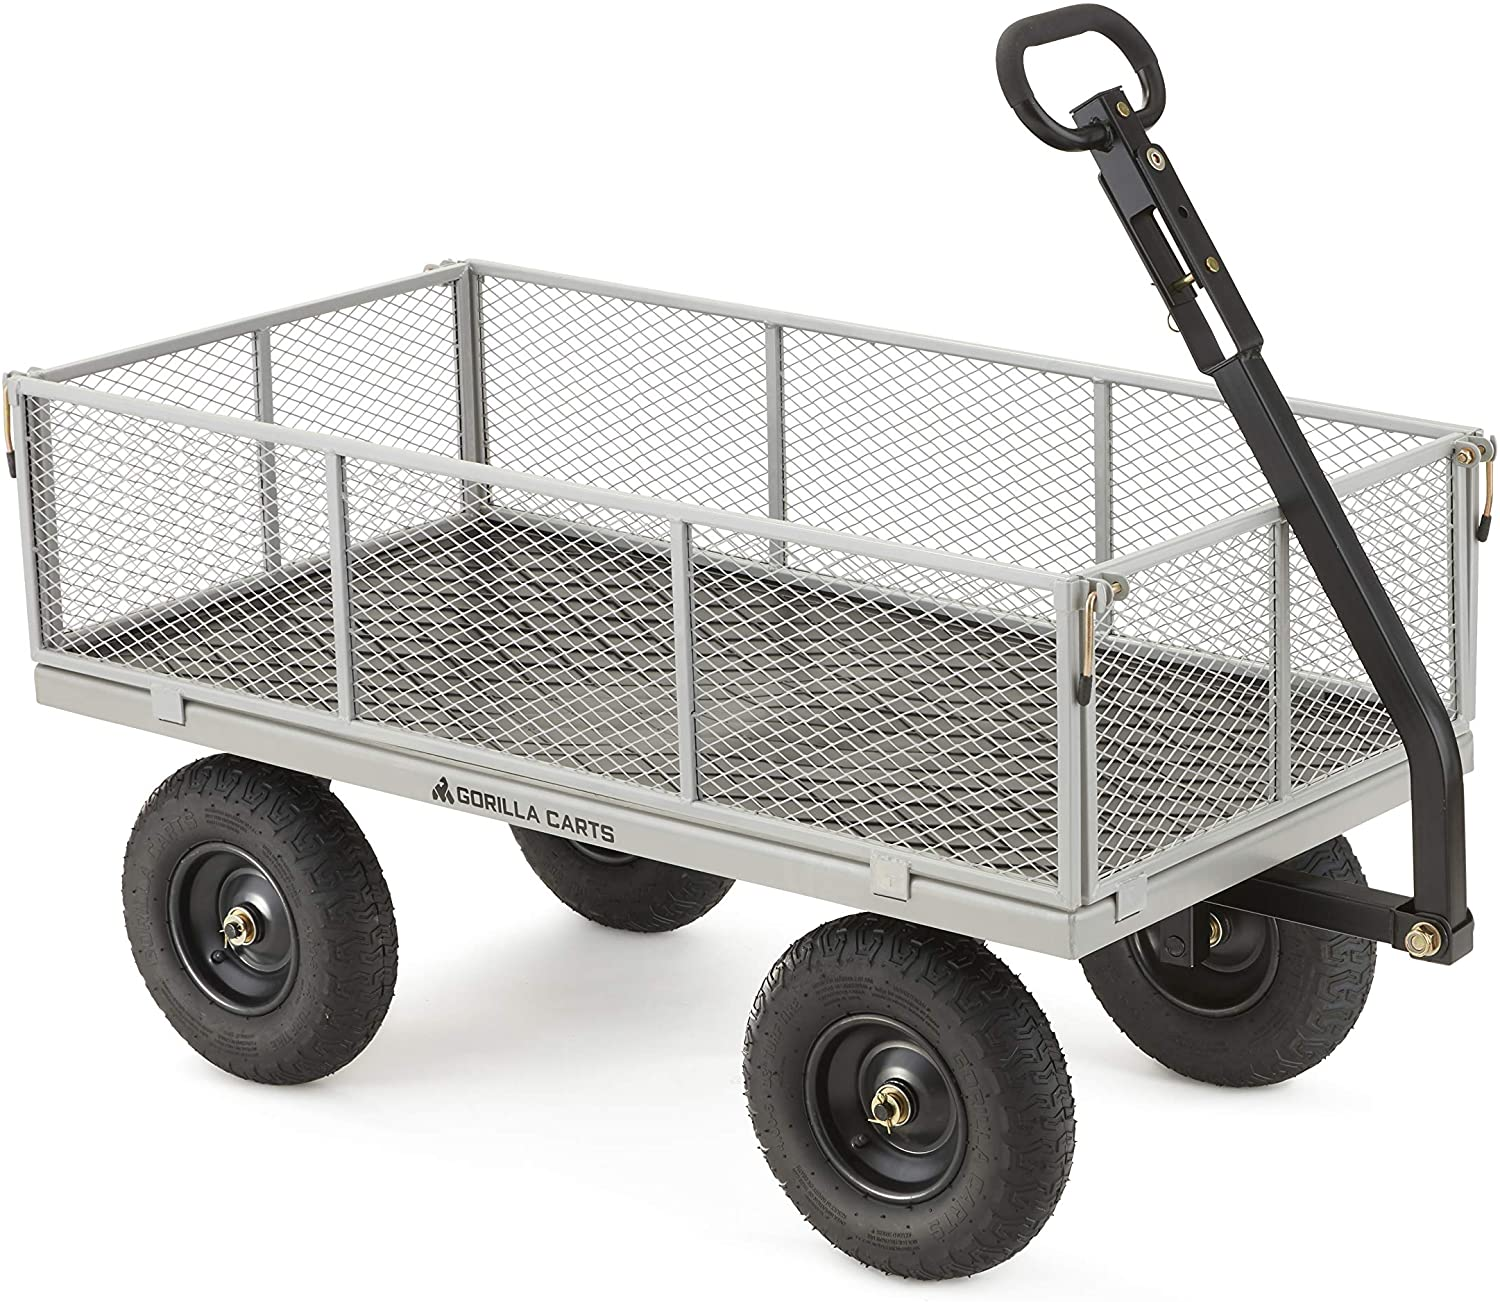 Gorilla Carts GOR1001-COM Heavy-Duty Steel Utility Cart with Removable Sides